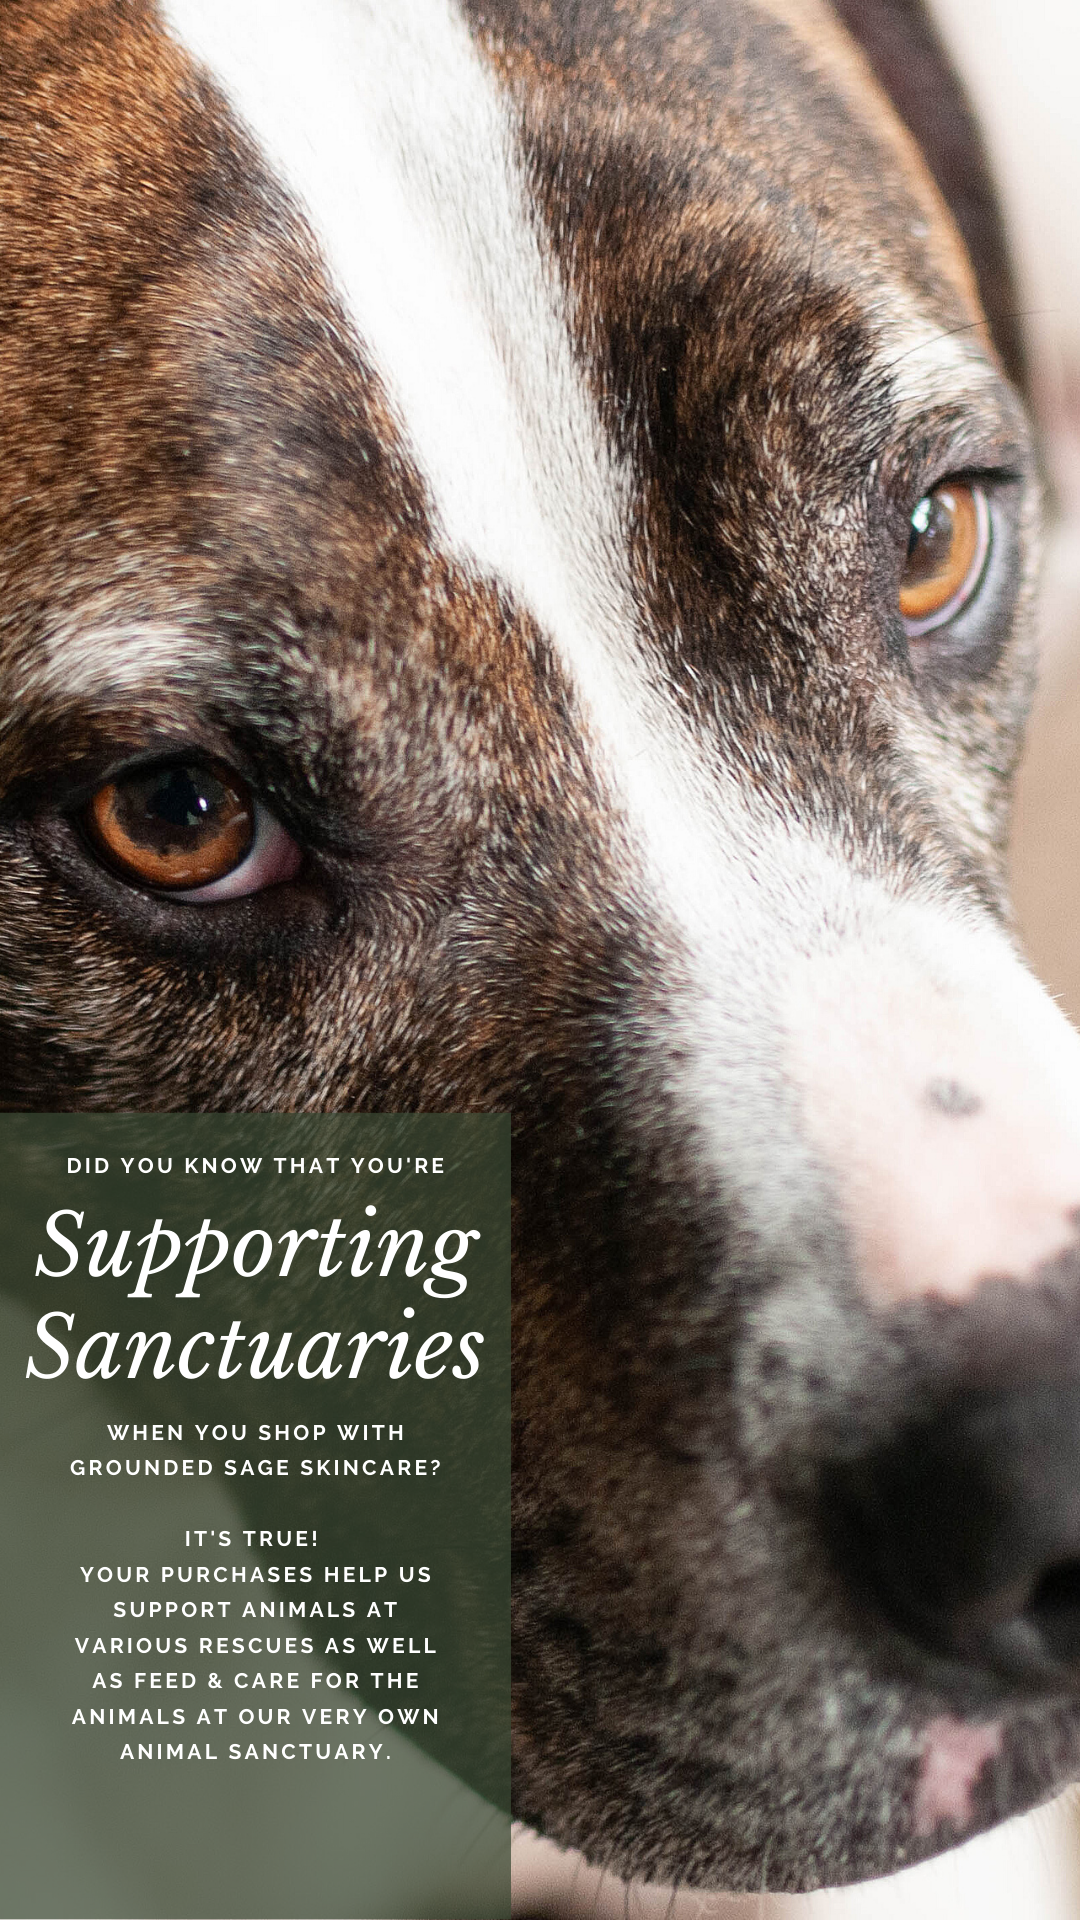 Beauty Brands That Give Back to Charity - Grounded Sage Skincare - Helping Animals - Helps Animal Rescue